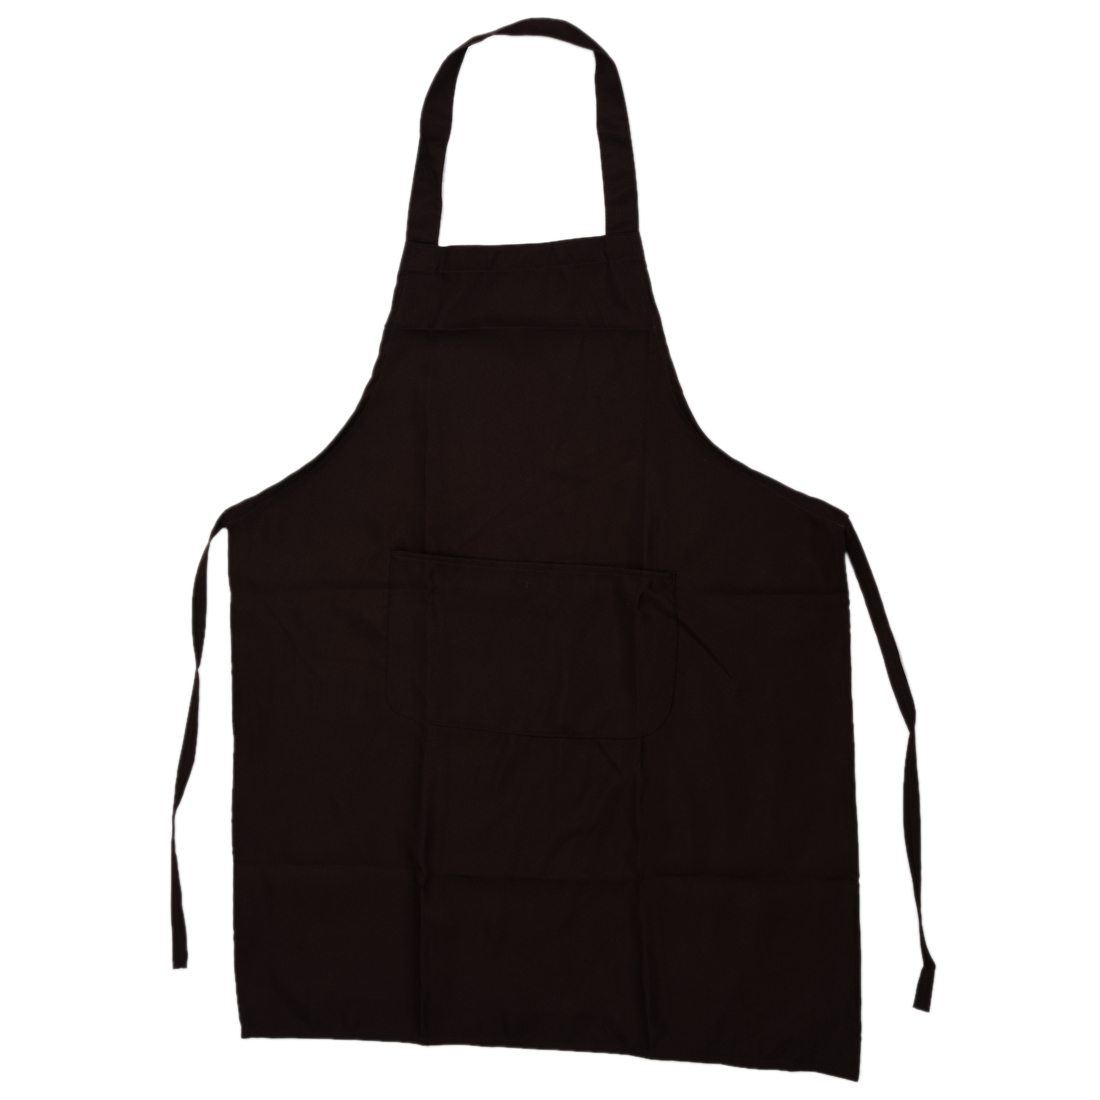 COFFEE MENS WOMENS BBQ COOKING BUTCHER KITCHEN NOVELTY CHEF APRON